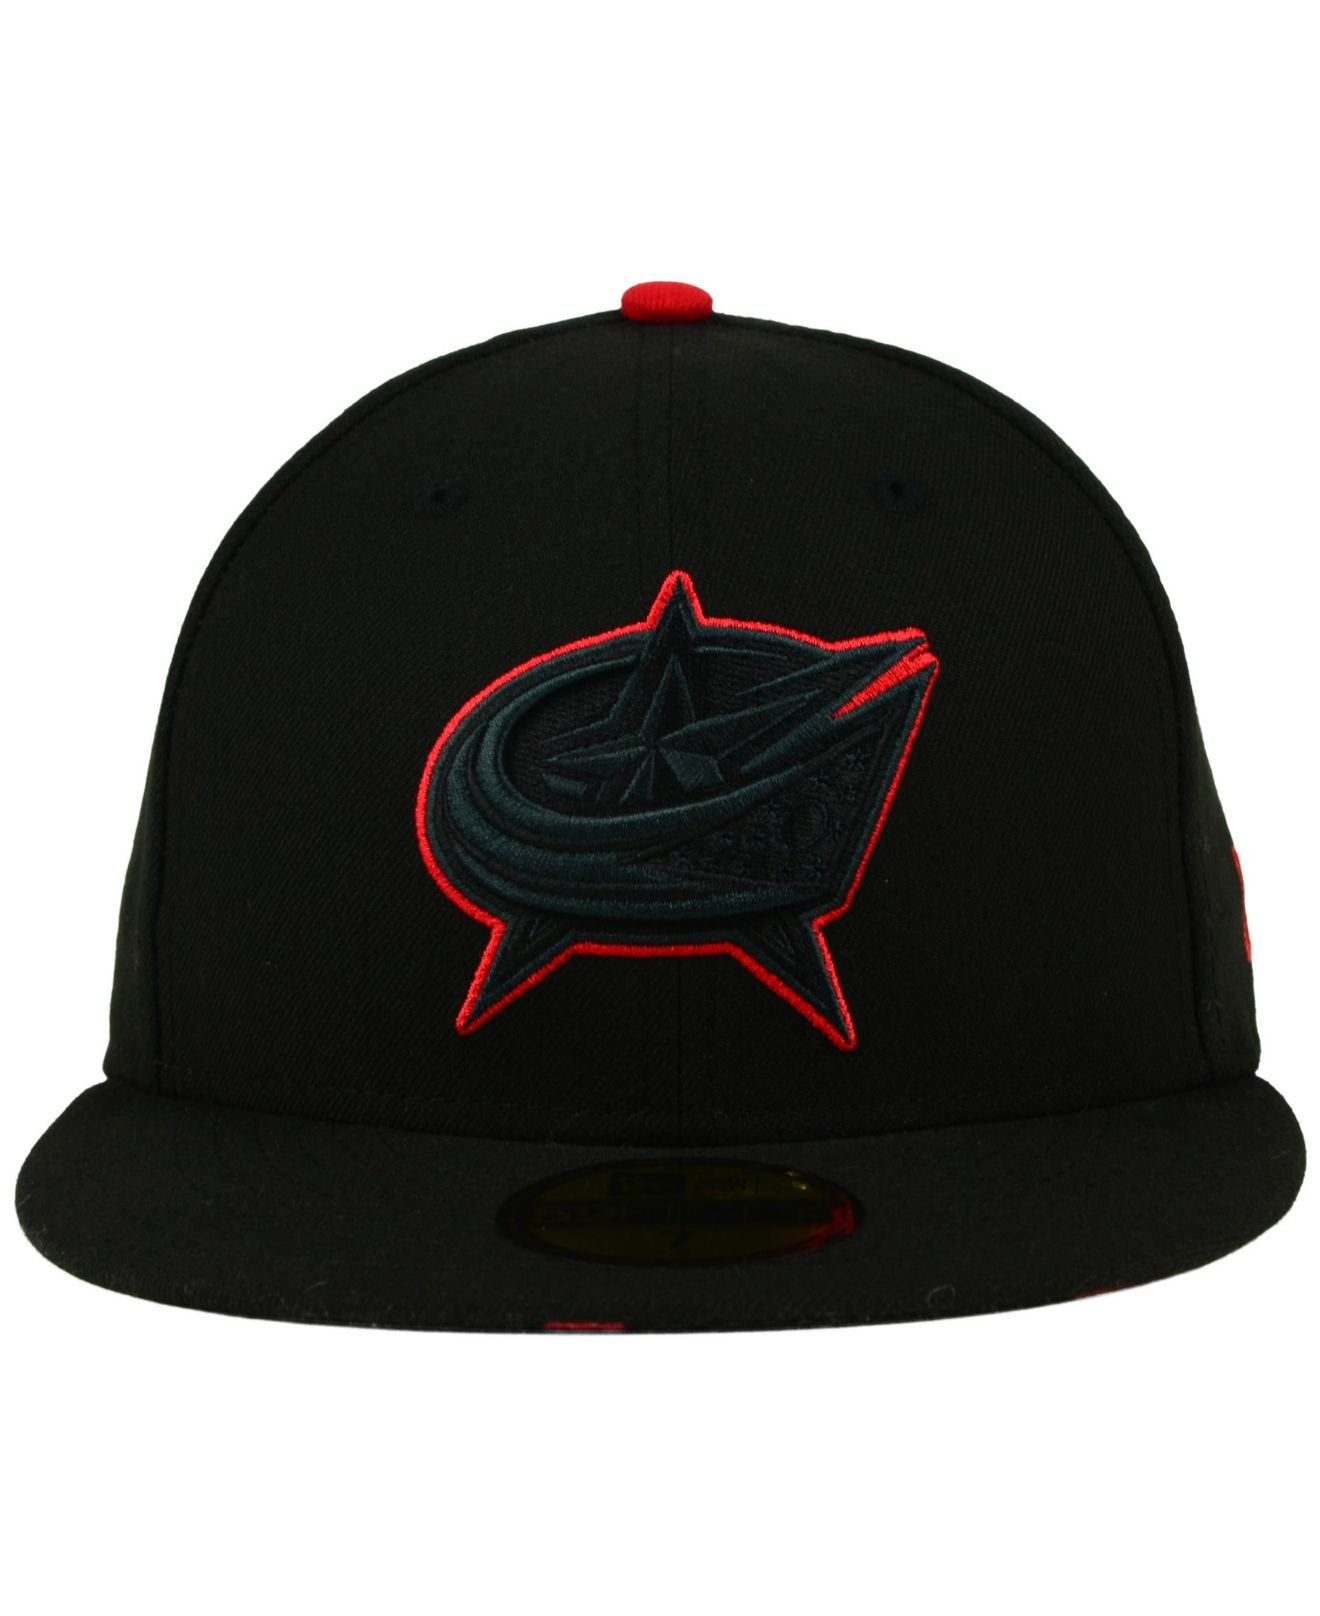 f3df84e2bcf ... fitted cap italy lyst ktz columbus blue jackets pop flip 59fifty cap in  black for men b7683 3adf5 ...